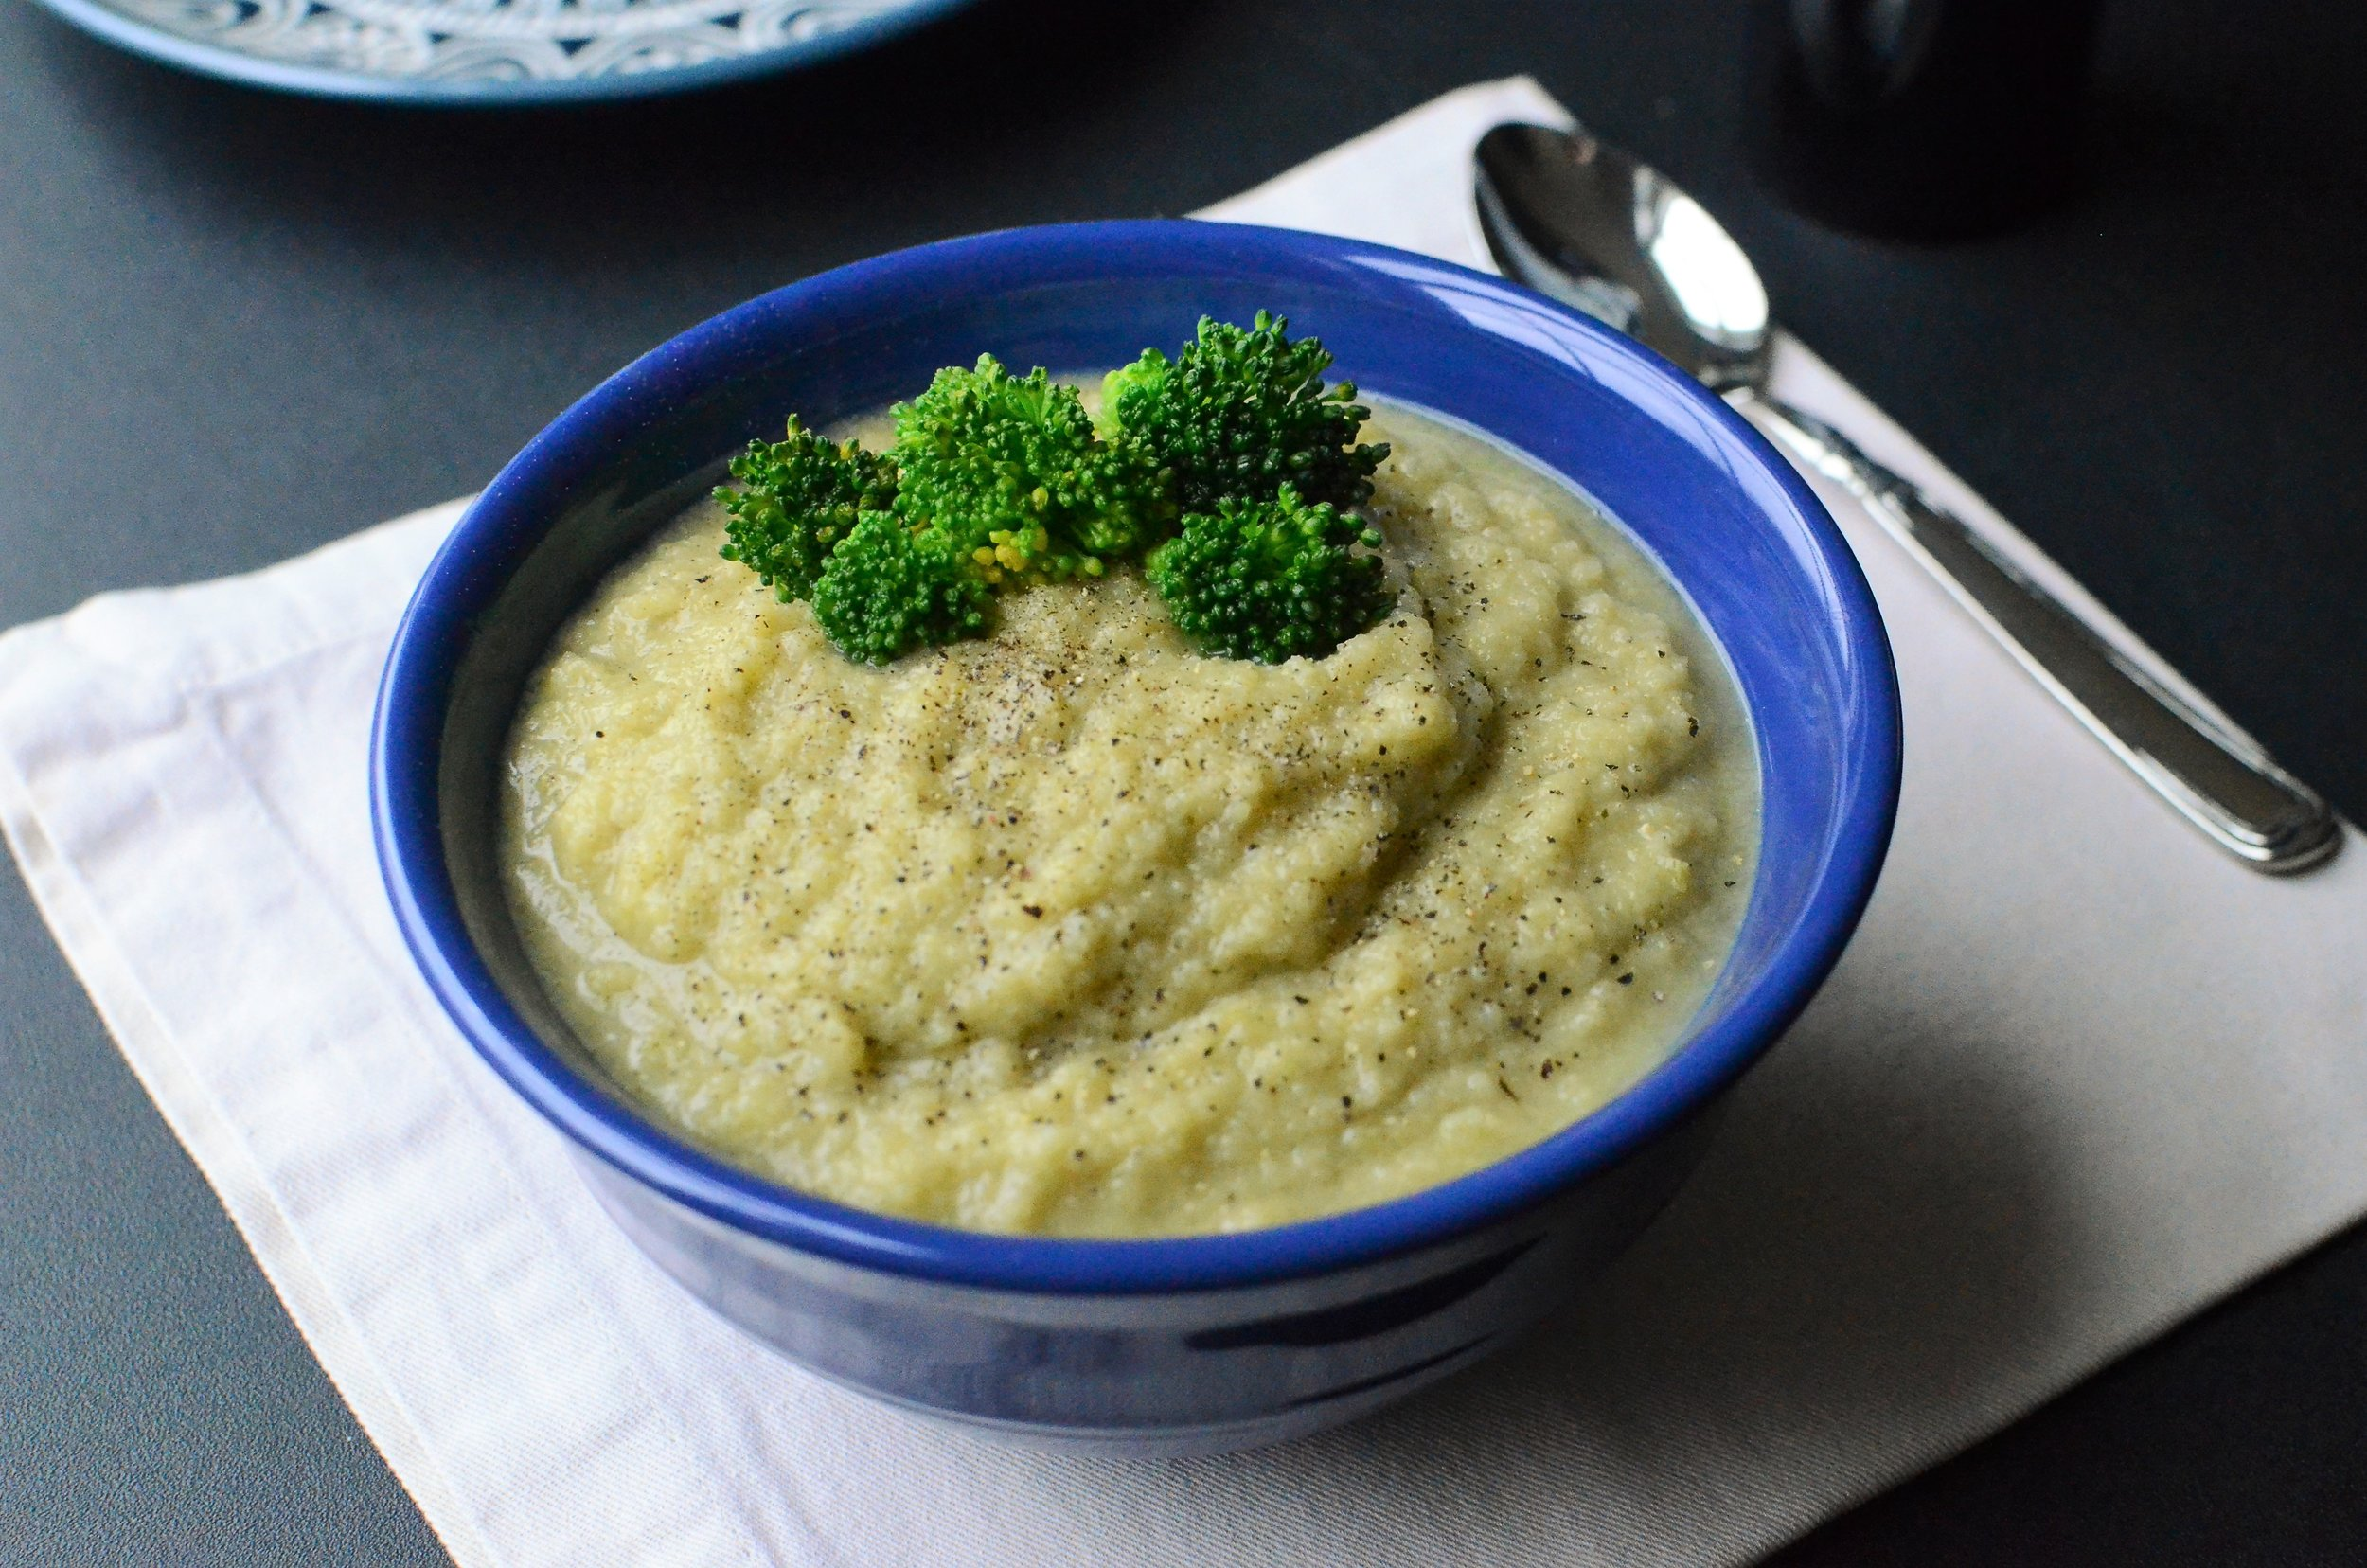 Broccoli Stem Soup - ButterYum. What to do with broccoli stems? can I cook with broccoli stems? Can I use broccoli stems? How can I use broccoli stems? broccoli stem soup recipe.  broccoli stalk soup recipe.  broccoli stem soup recipe.  what to do with leftover broccoli stalks?  what to do with leftover broccoli stems?  can you eat broccoli stalks?  are broccoli stalks edible?